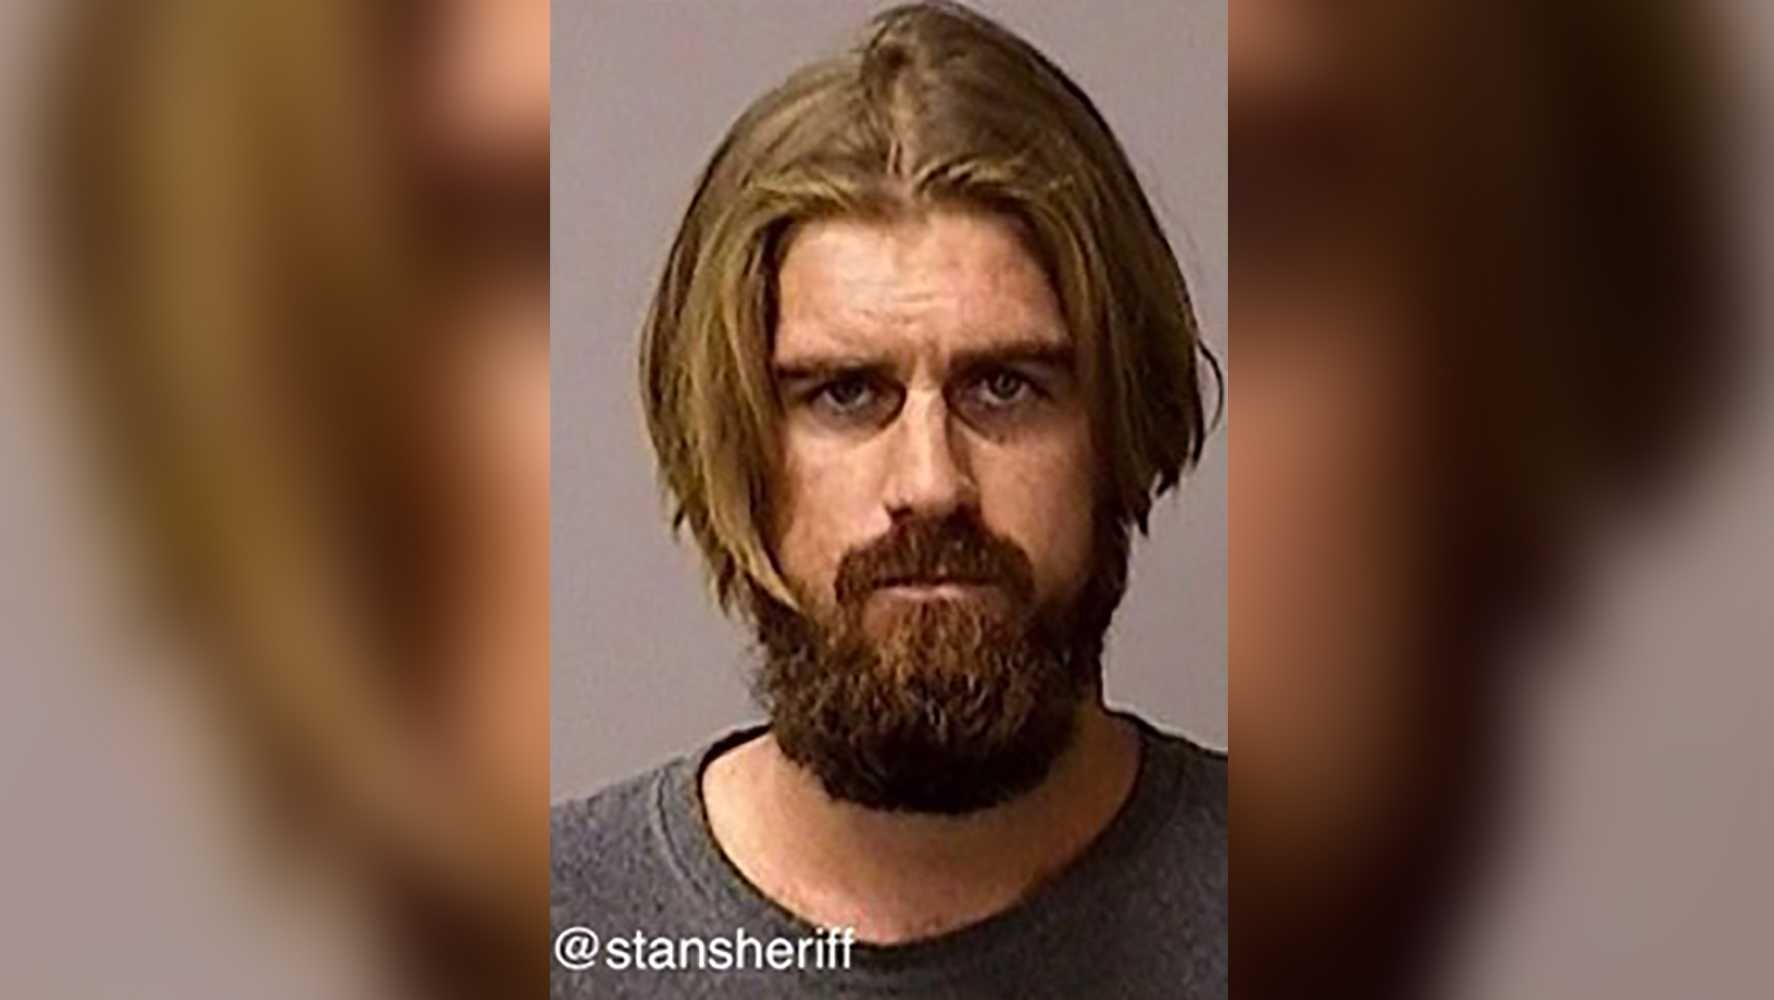 Matthew Gibbs, 32, of Modesto, was arrested in connection with a DUI crash that led to the death of a Modesto police  sergeant, the Stanislaus County Sheriff's Department said.